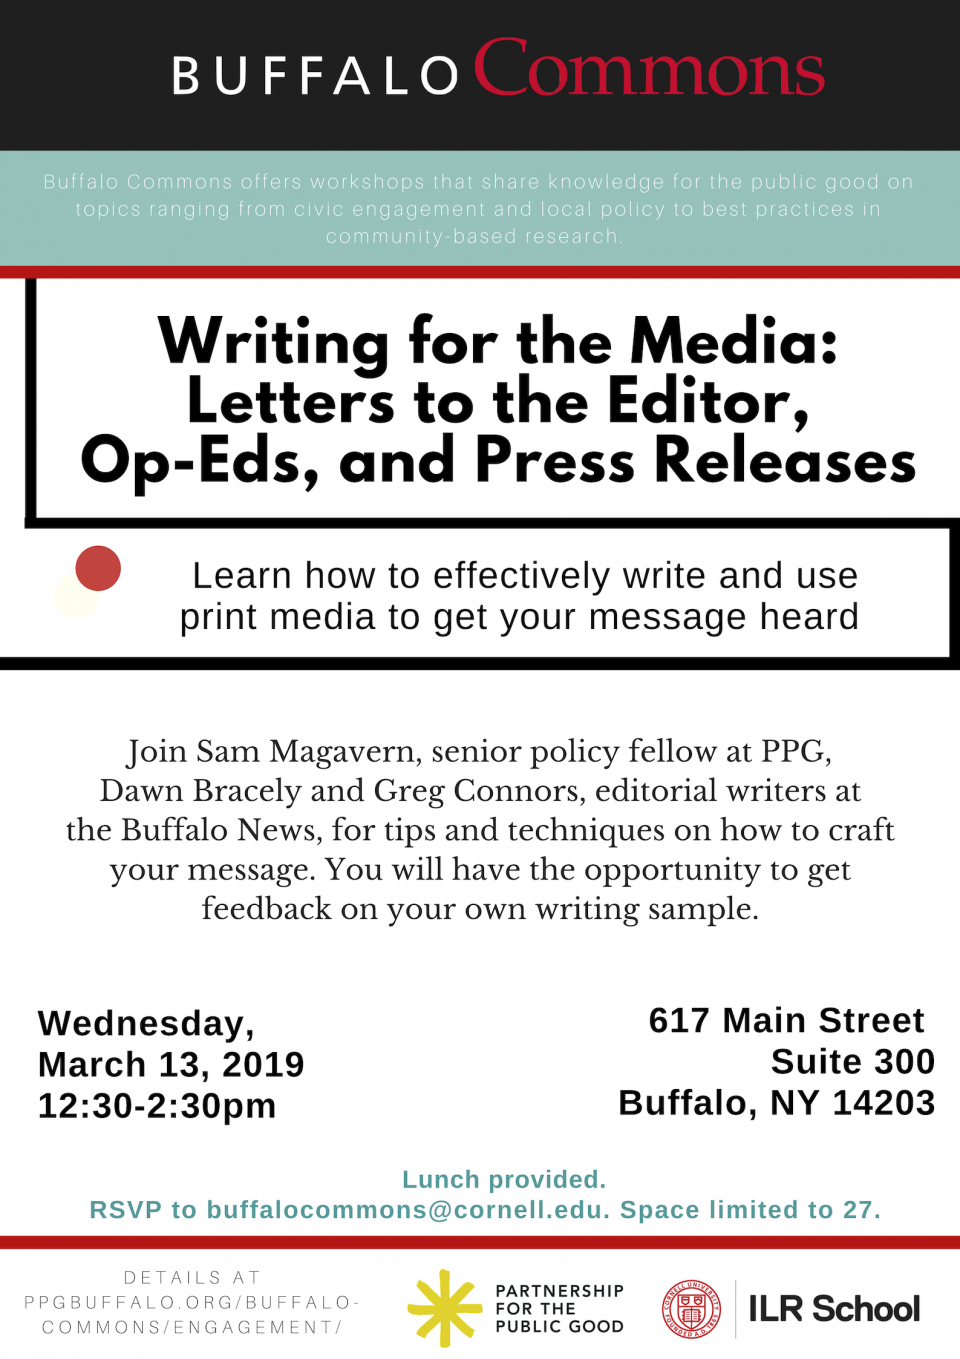 Writing for the Media: Letters to the Editor, Op-Eds, and Press Releases